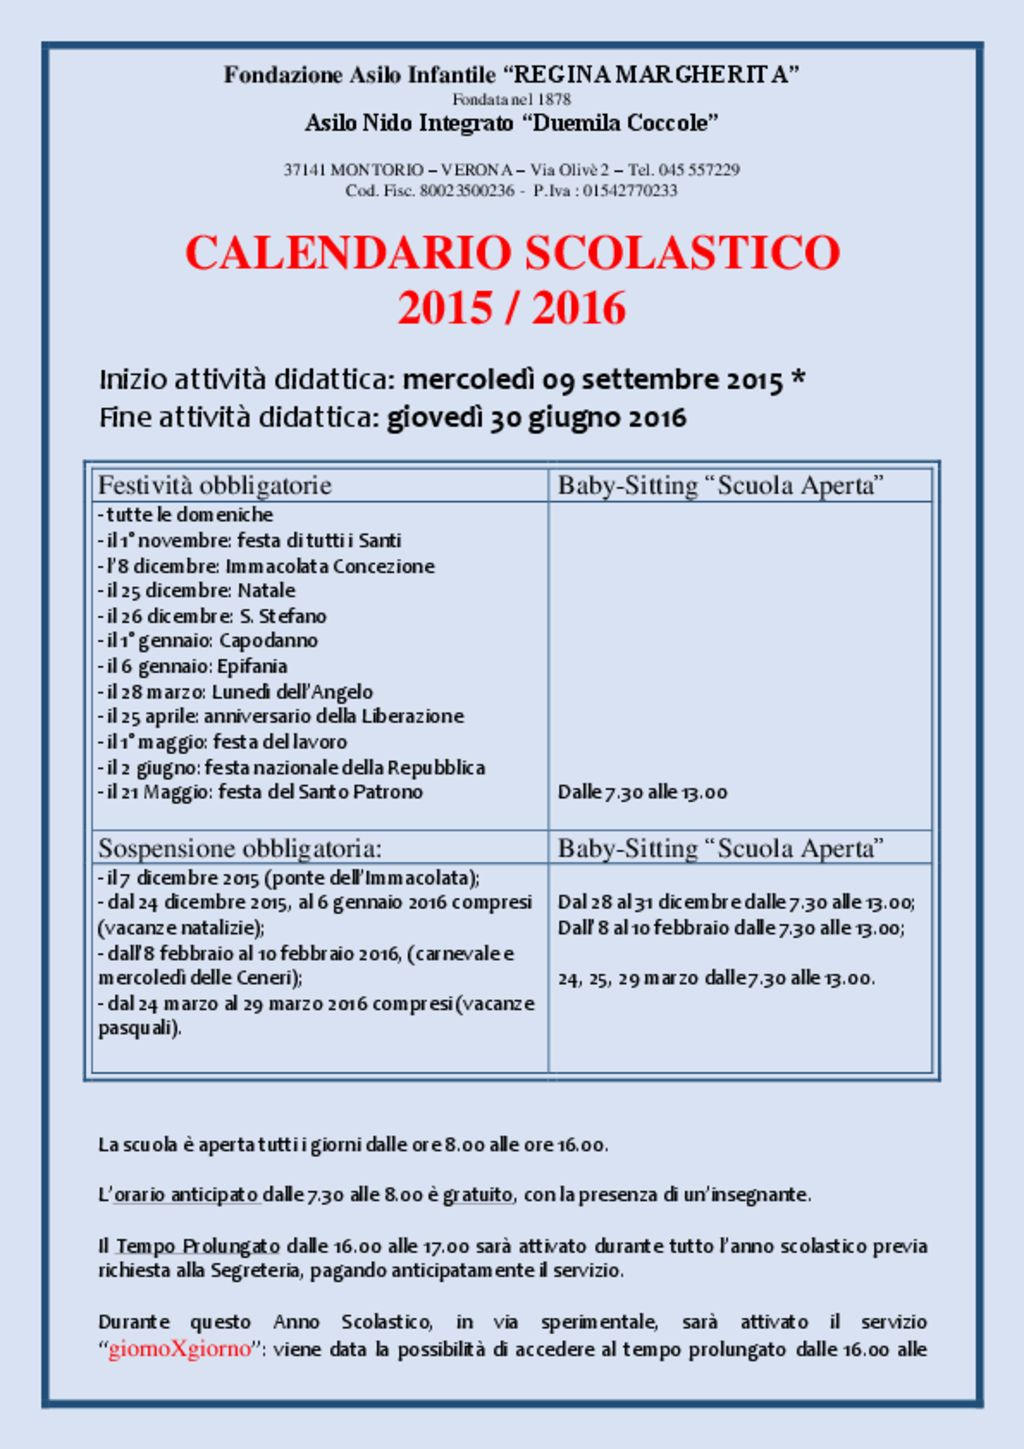 thumbnail of CALENDARIO SCOLASTICO INFANZIA 2015-2016